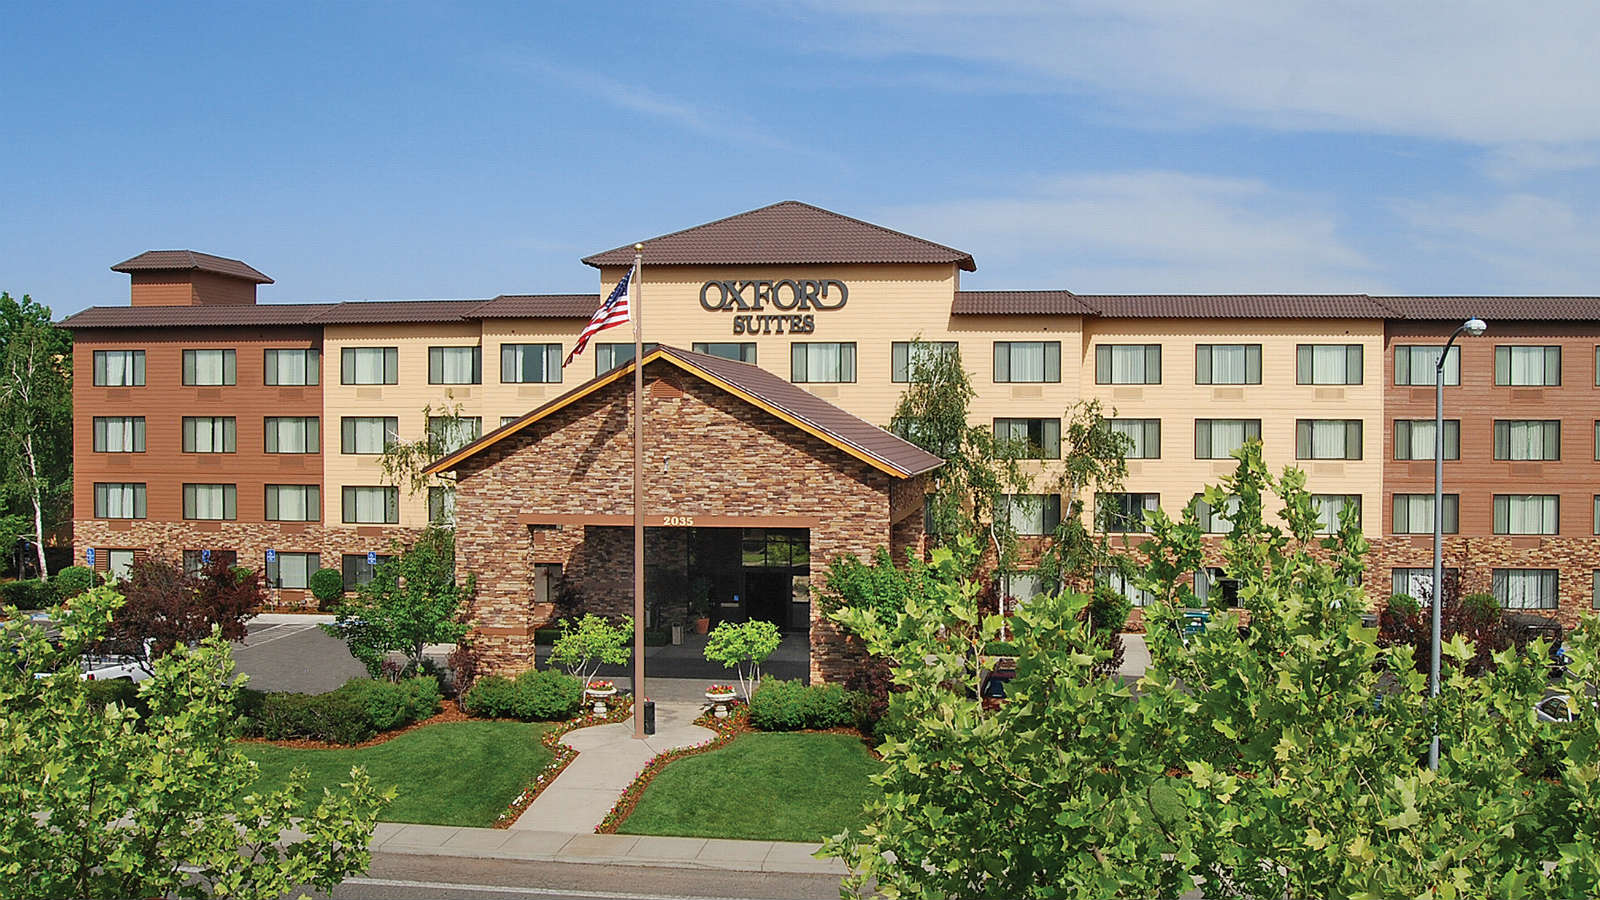 Chico Hotels Oxford Suites Chico Hotel